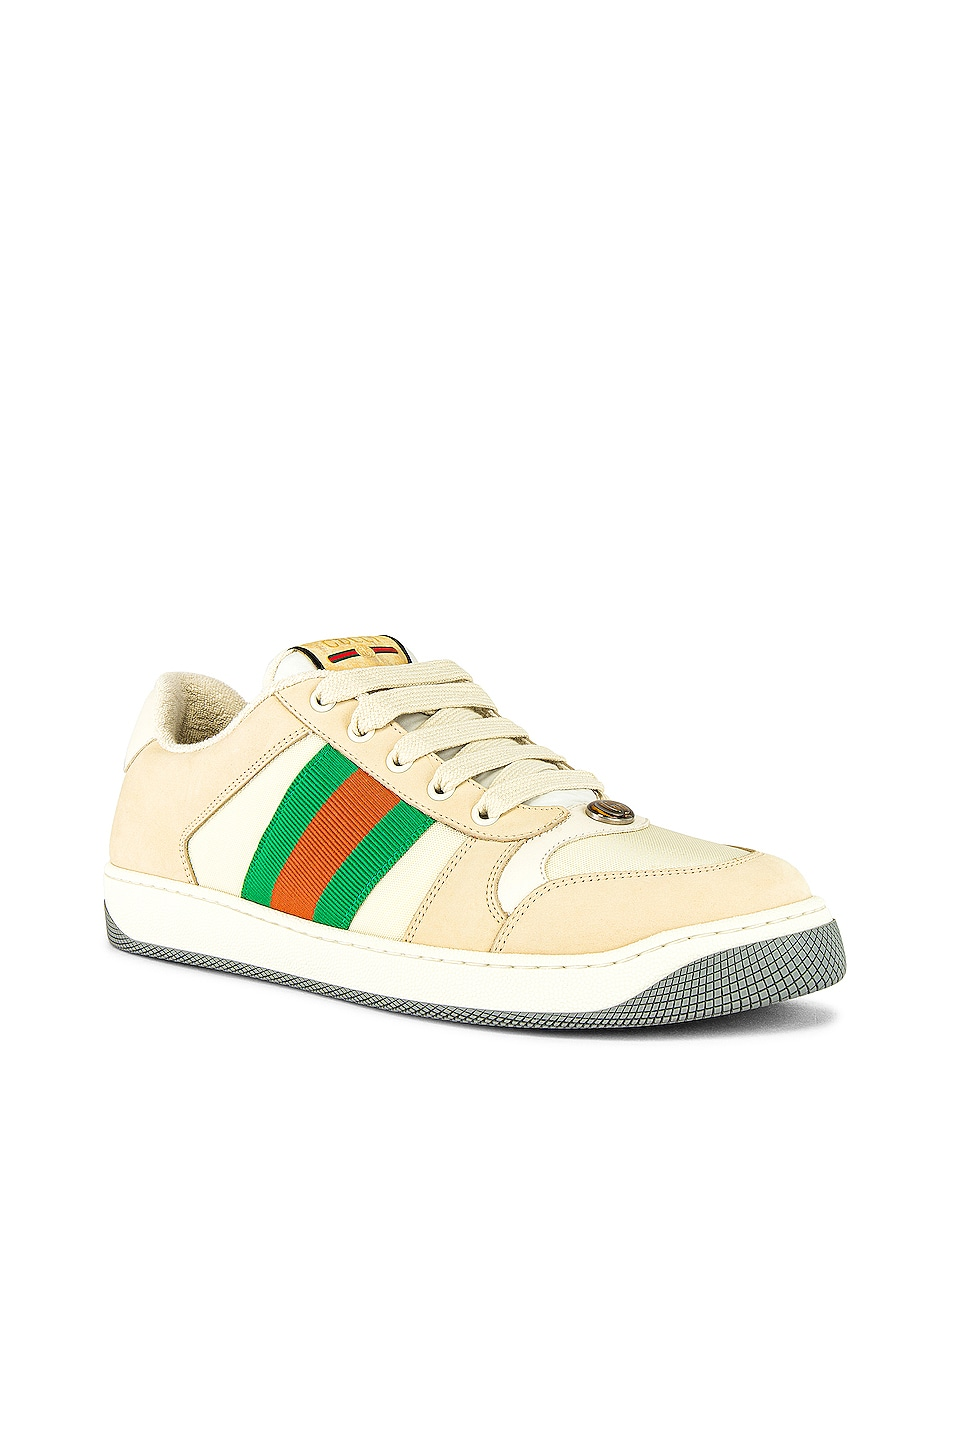 Image 1 of Gucci Screener Low Top Sneaker in White & Red & Green